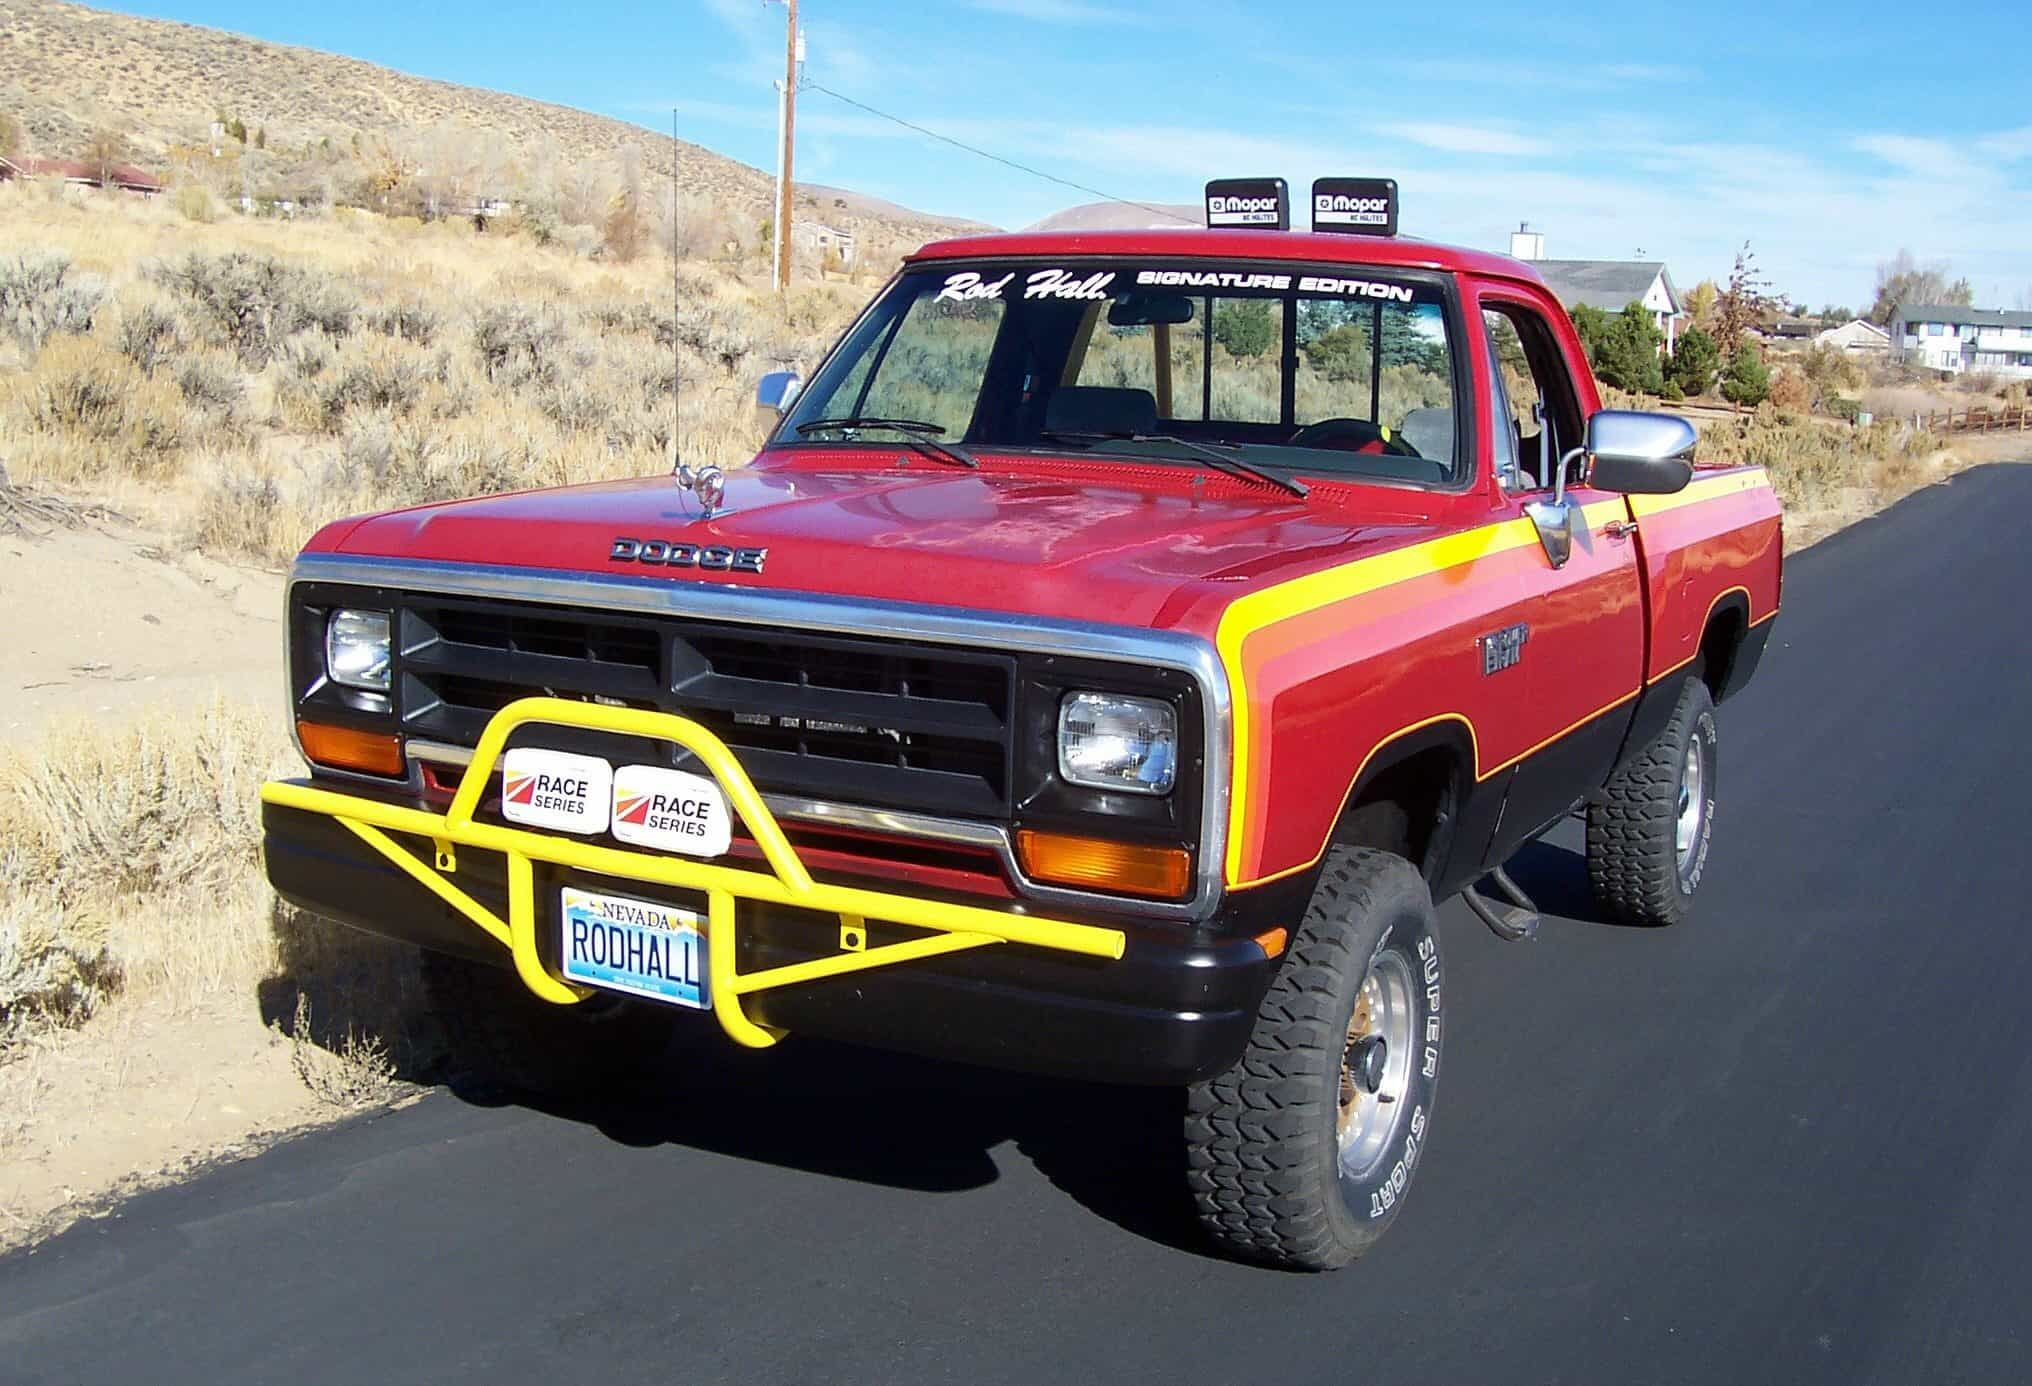 top ten pickup trucks - Dodge rod-hall